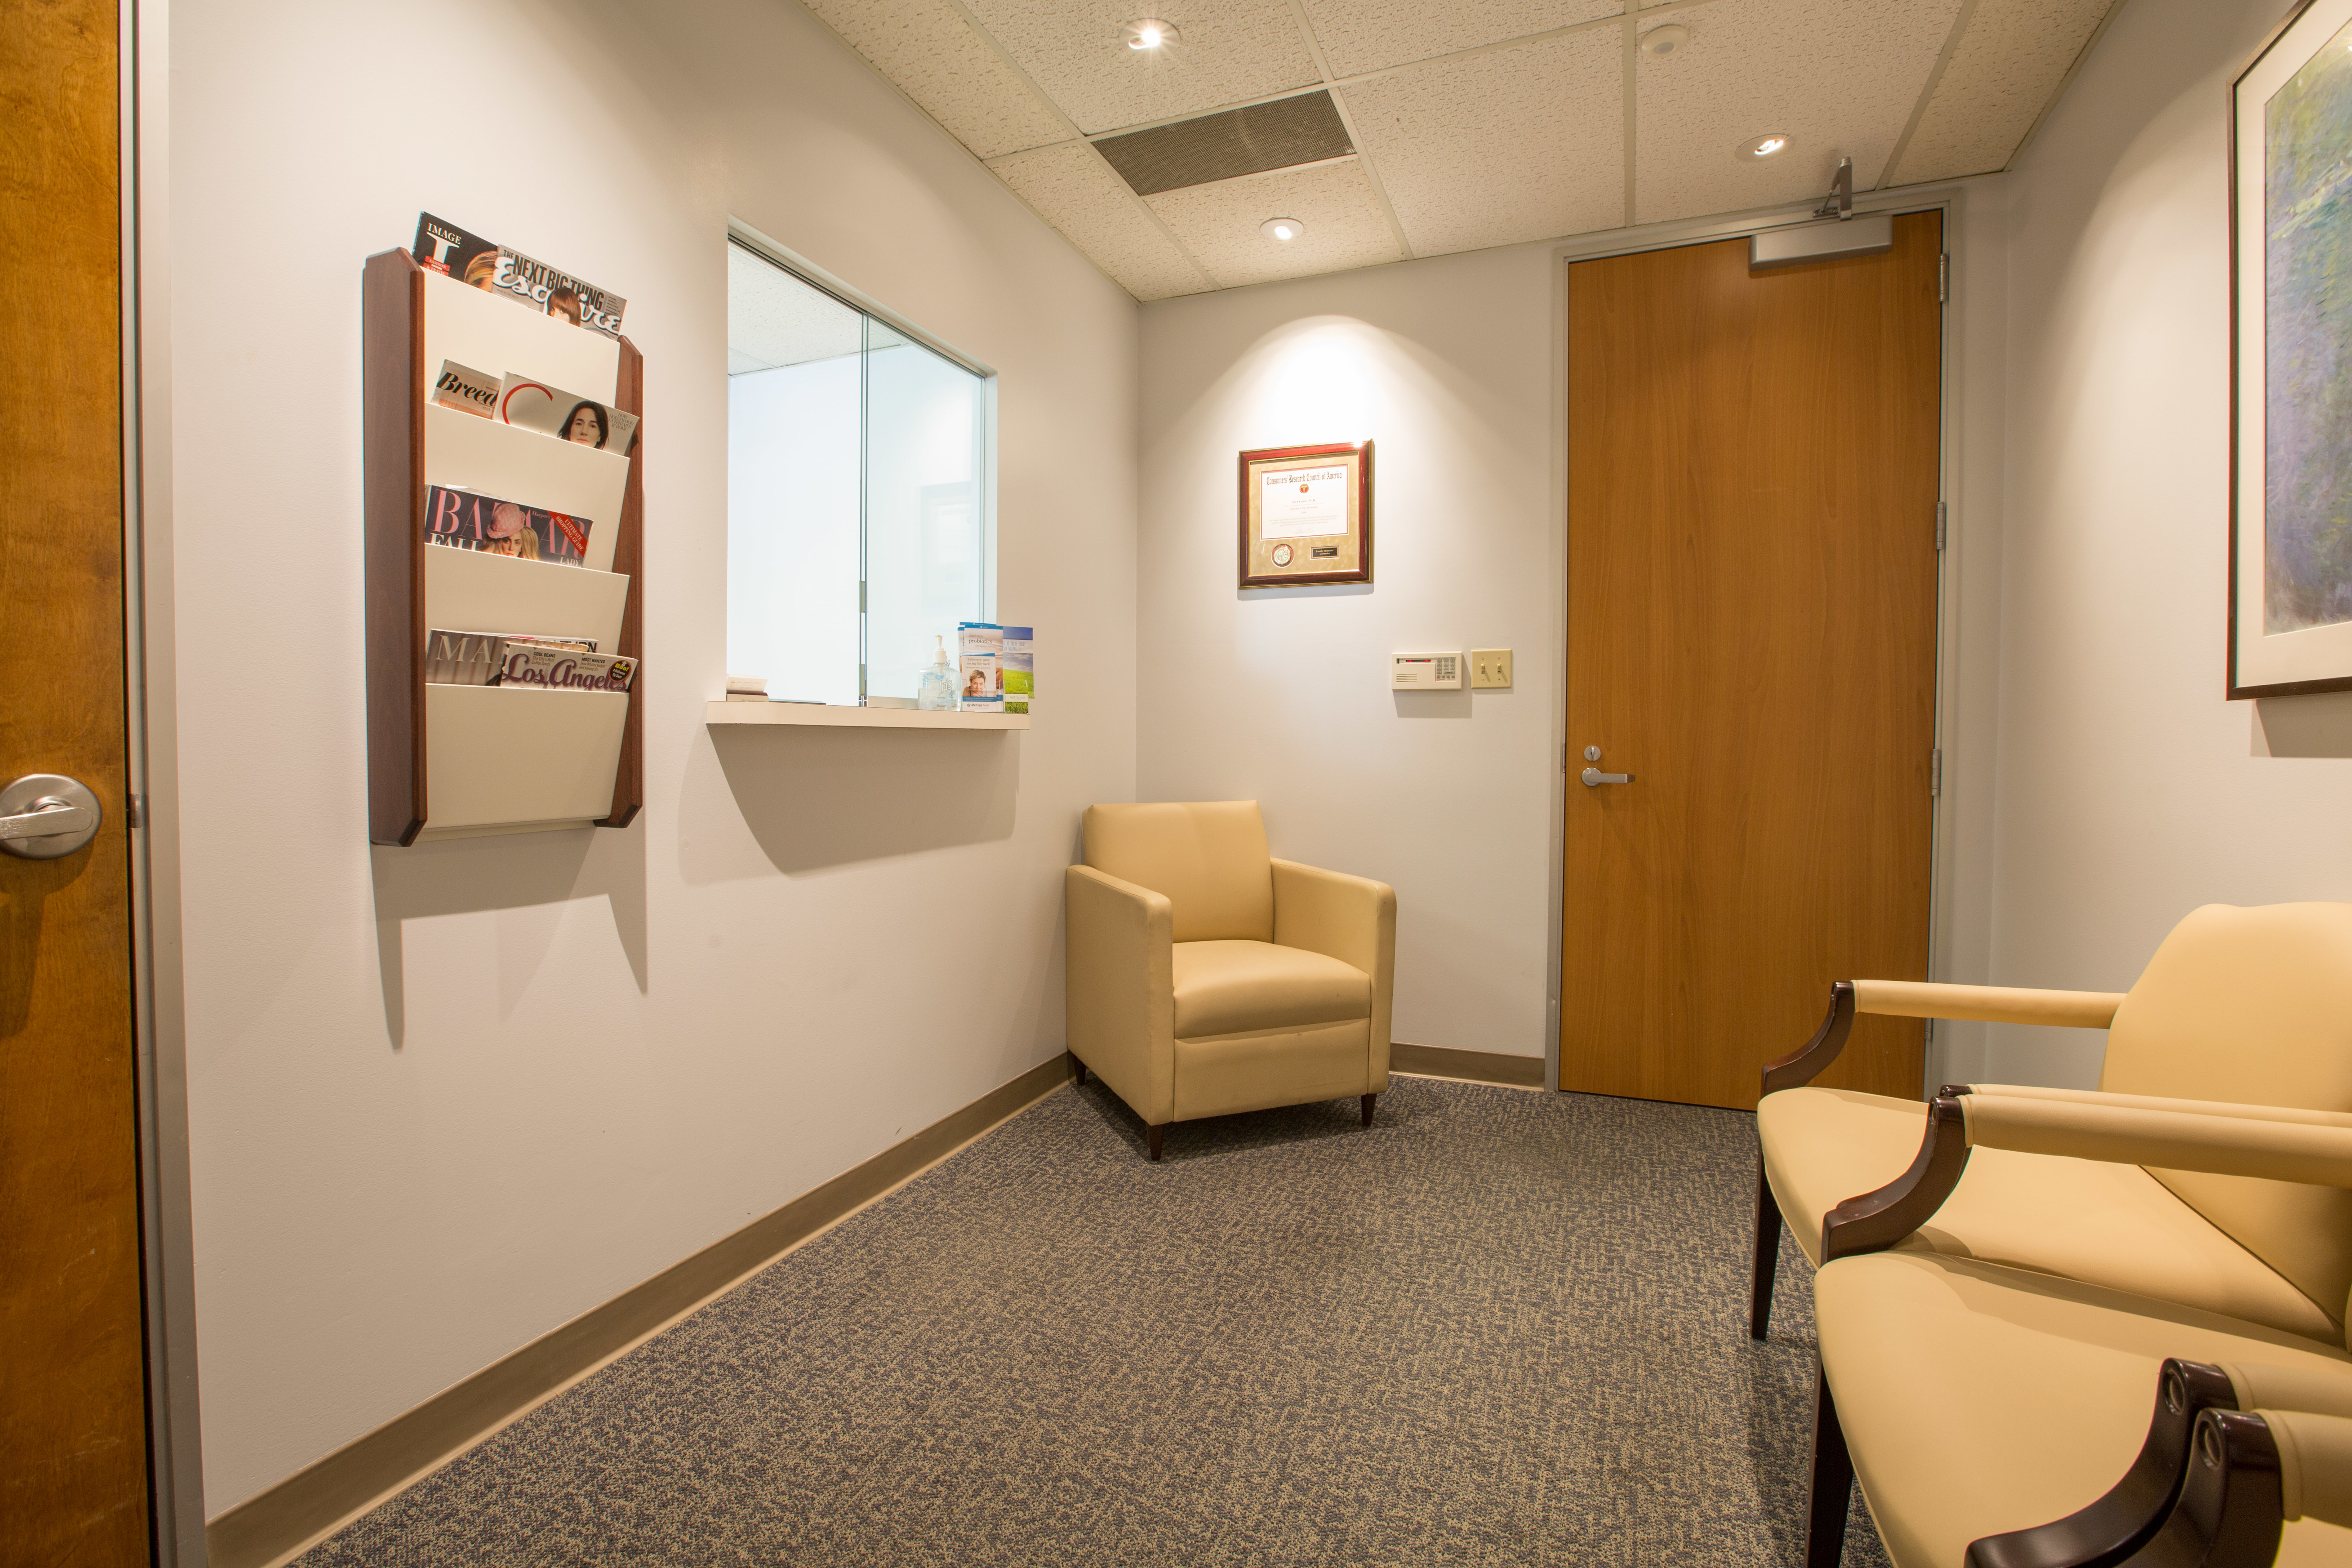 Gold Vitality Center: Dr. Alex Gold, MD, FAAFP - ad image